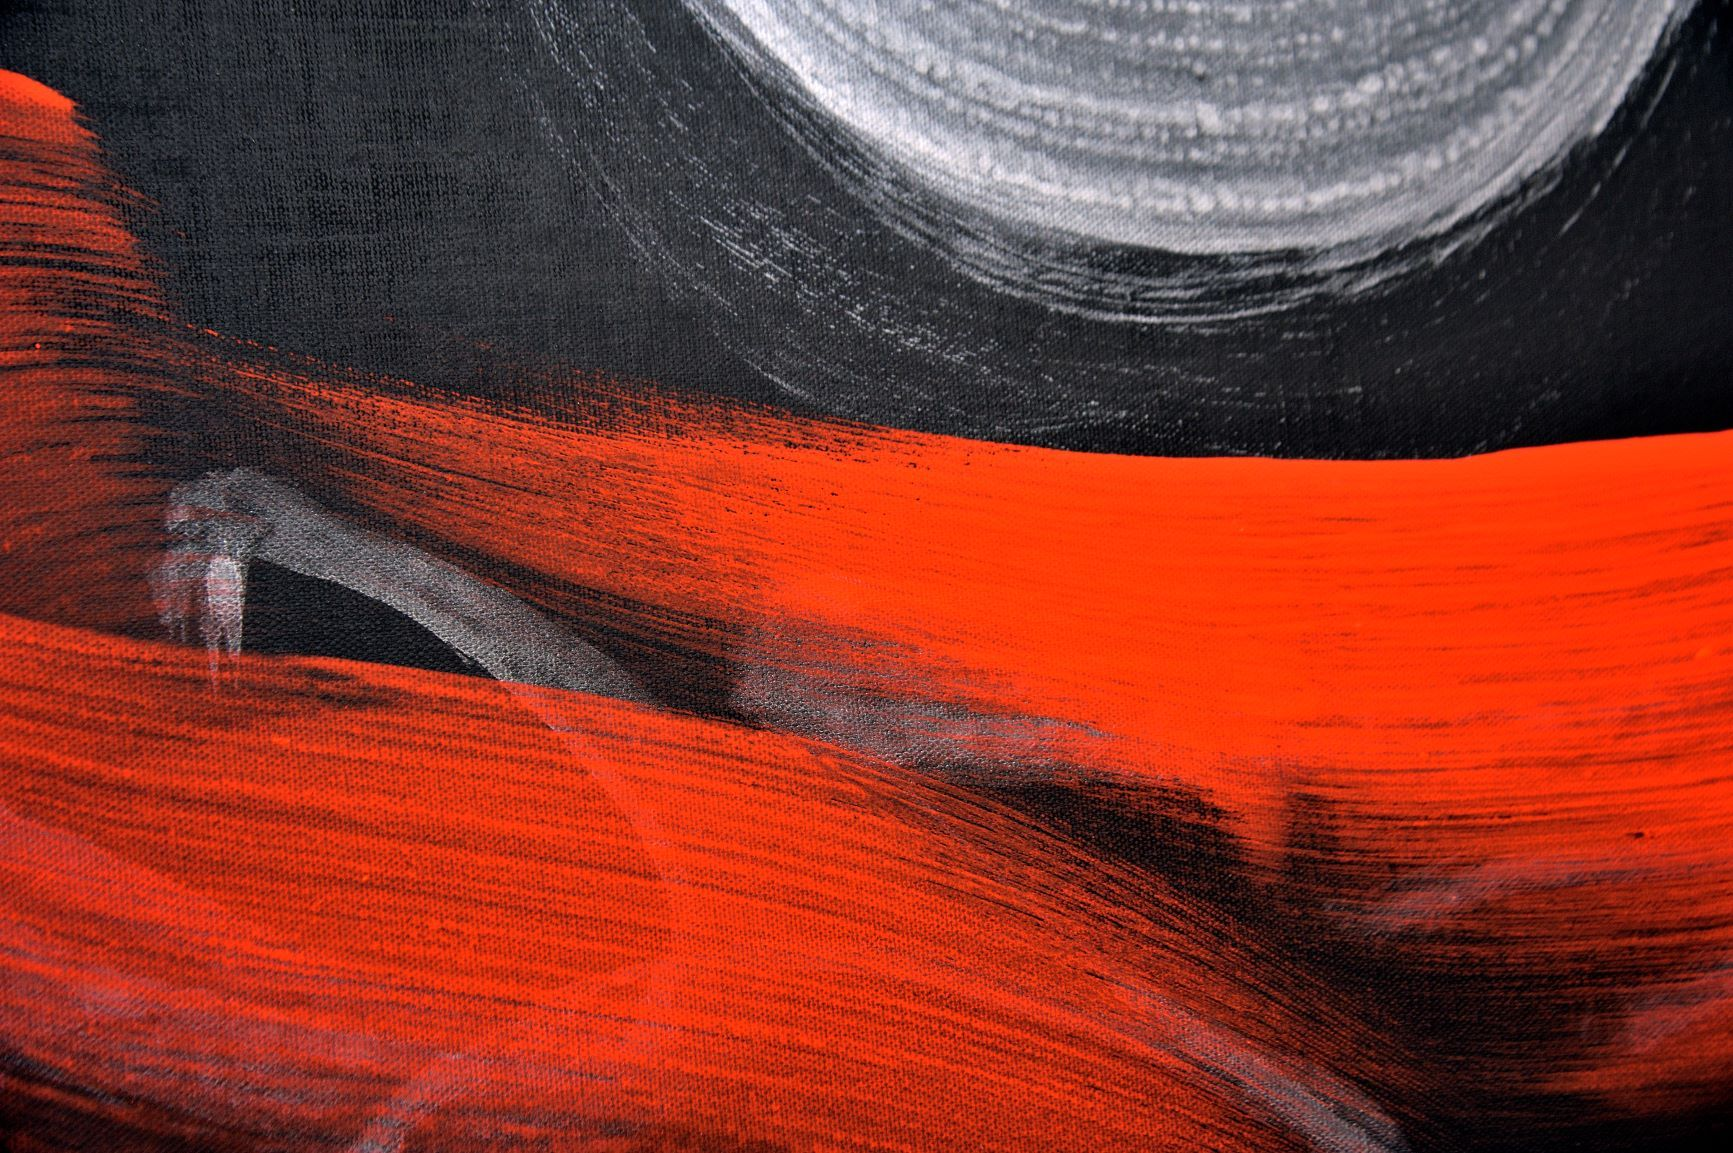 Permanescence TN695,Hachiro Kanno,Contemporary painting, detail 1